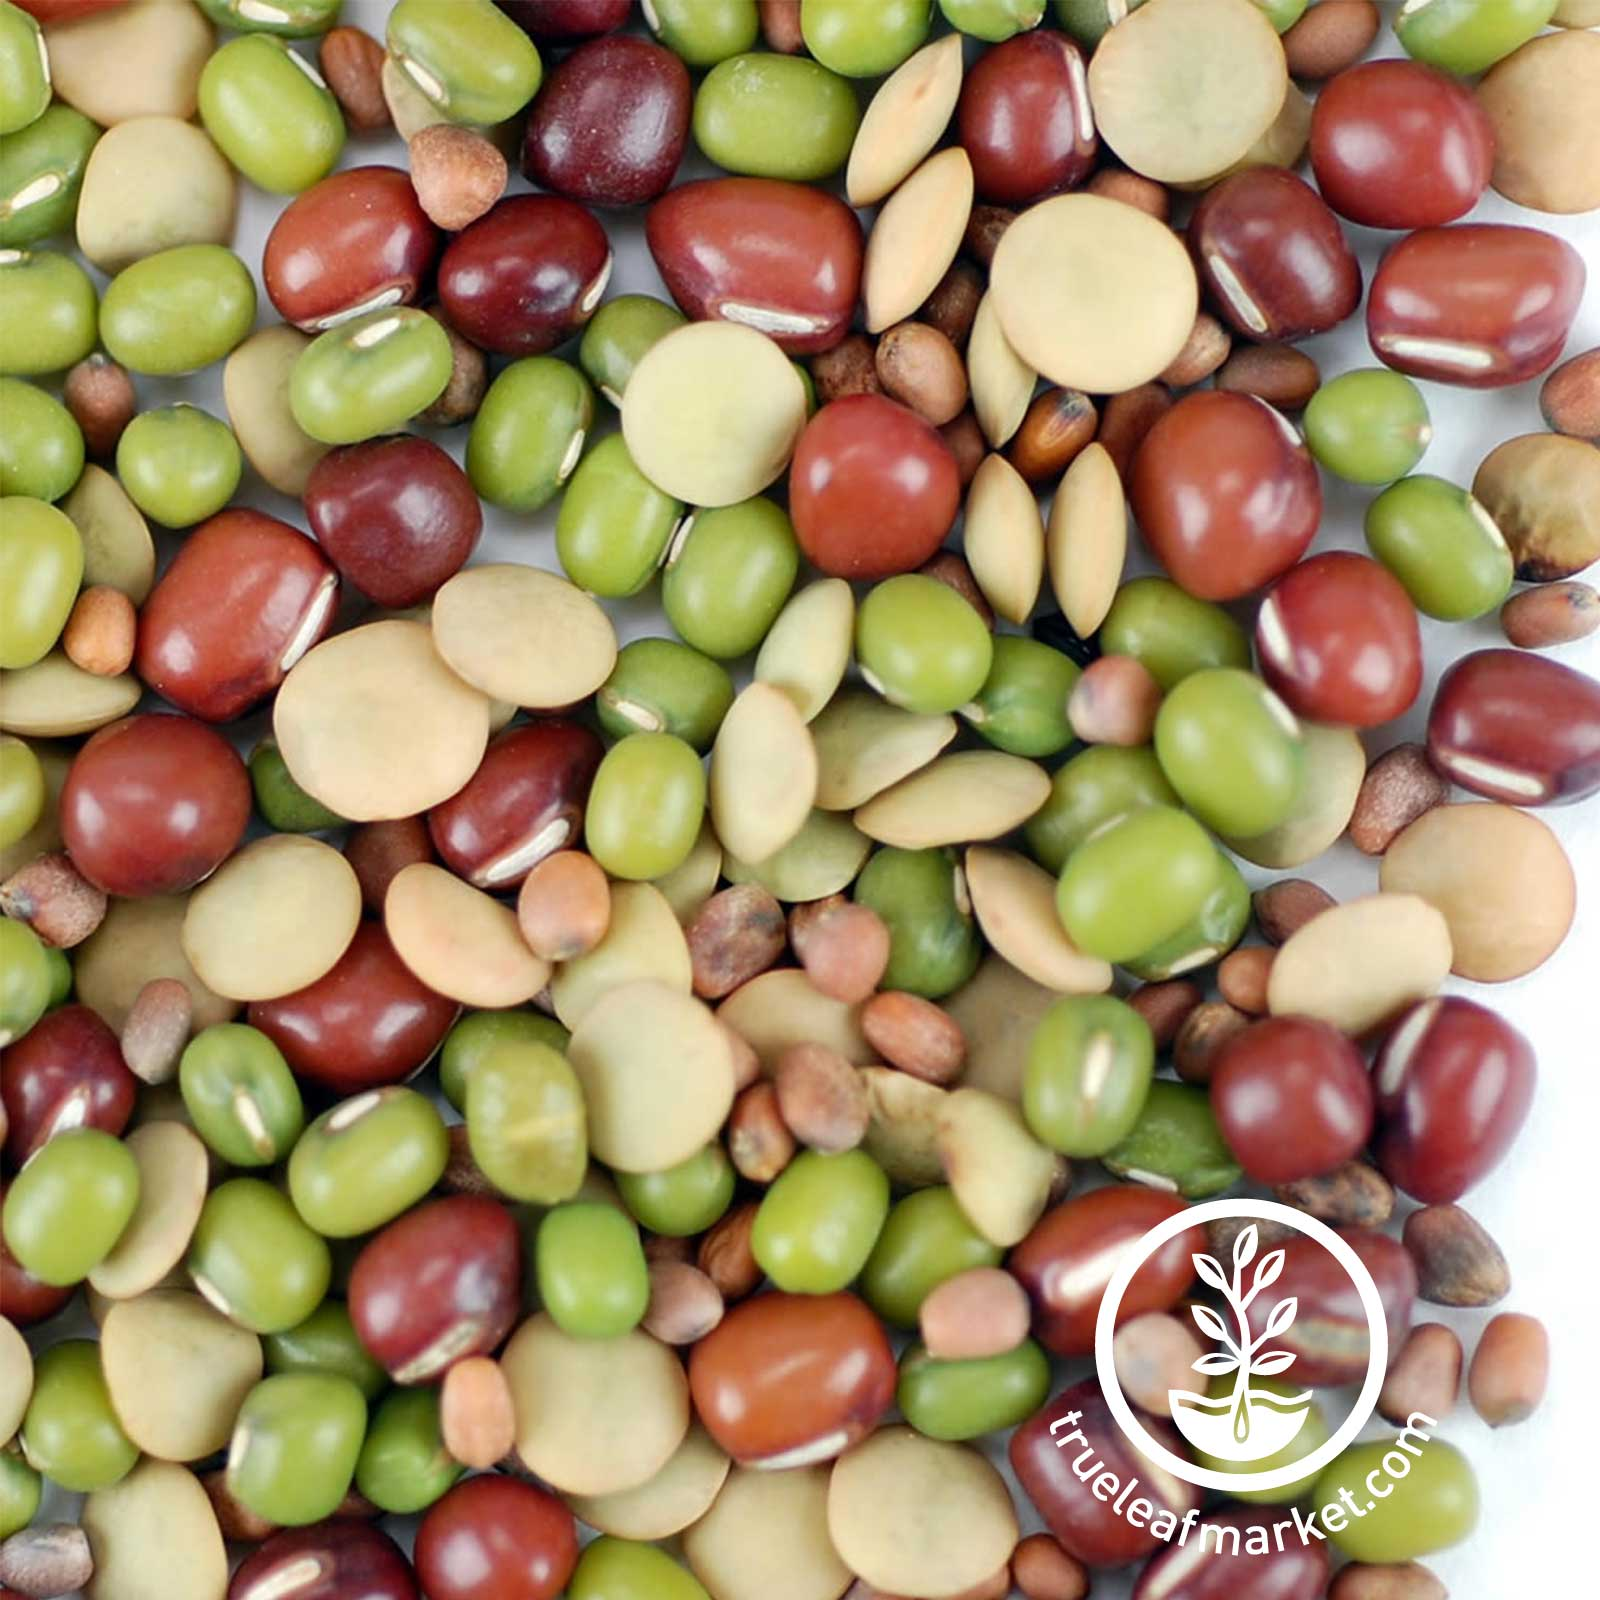 Bean Salad Sprouts Mix: Organic